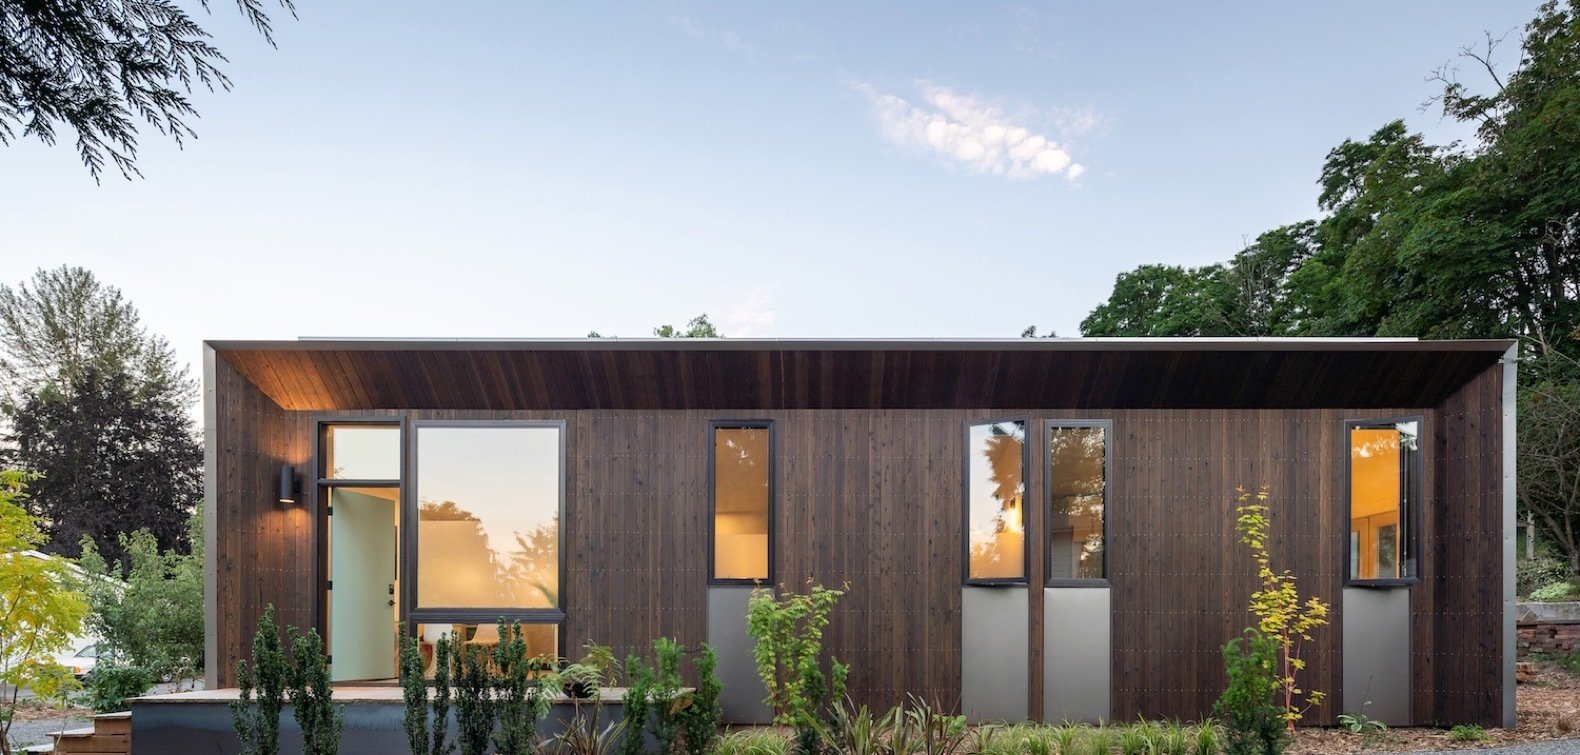 A New Start-Up Wants to Build a Tiny House in Your Backyard For Free